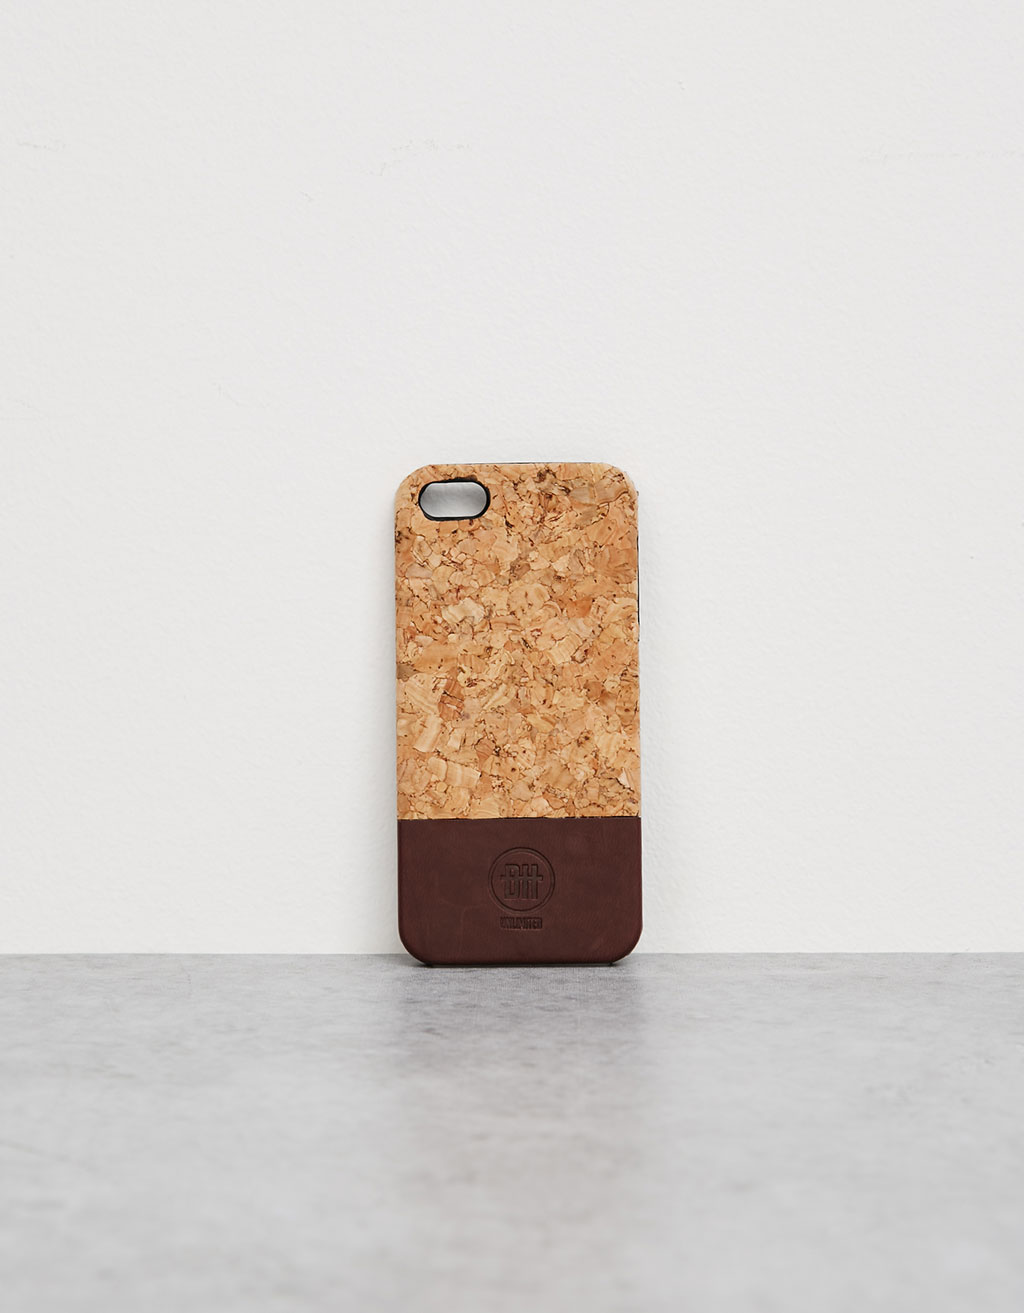 Carcasa corcho iPhone 5/5s